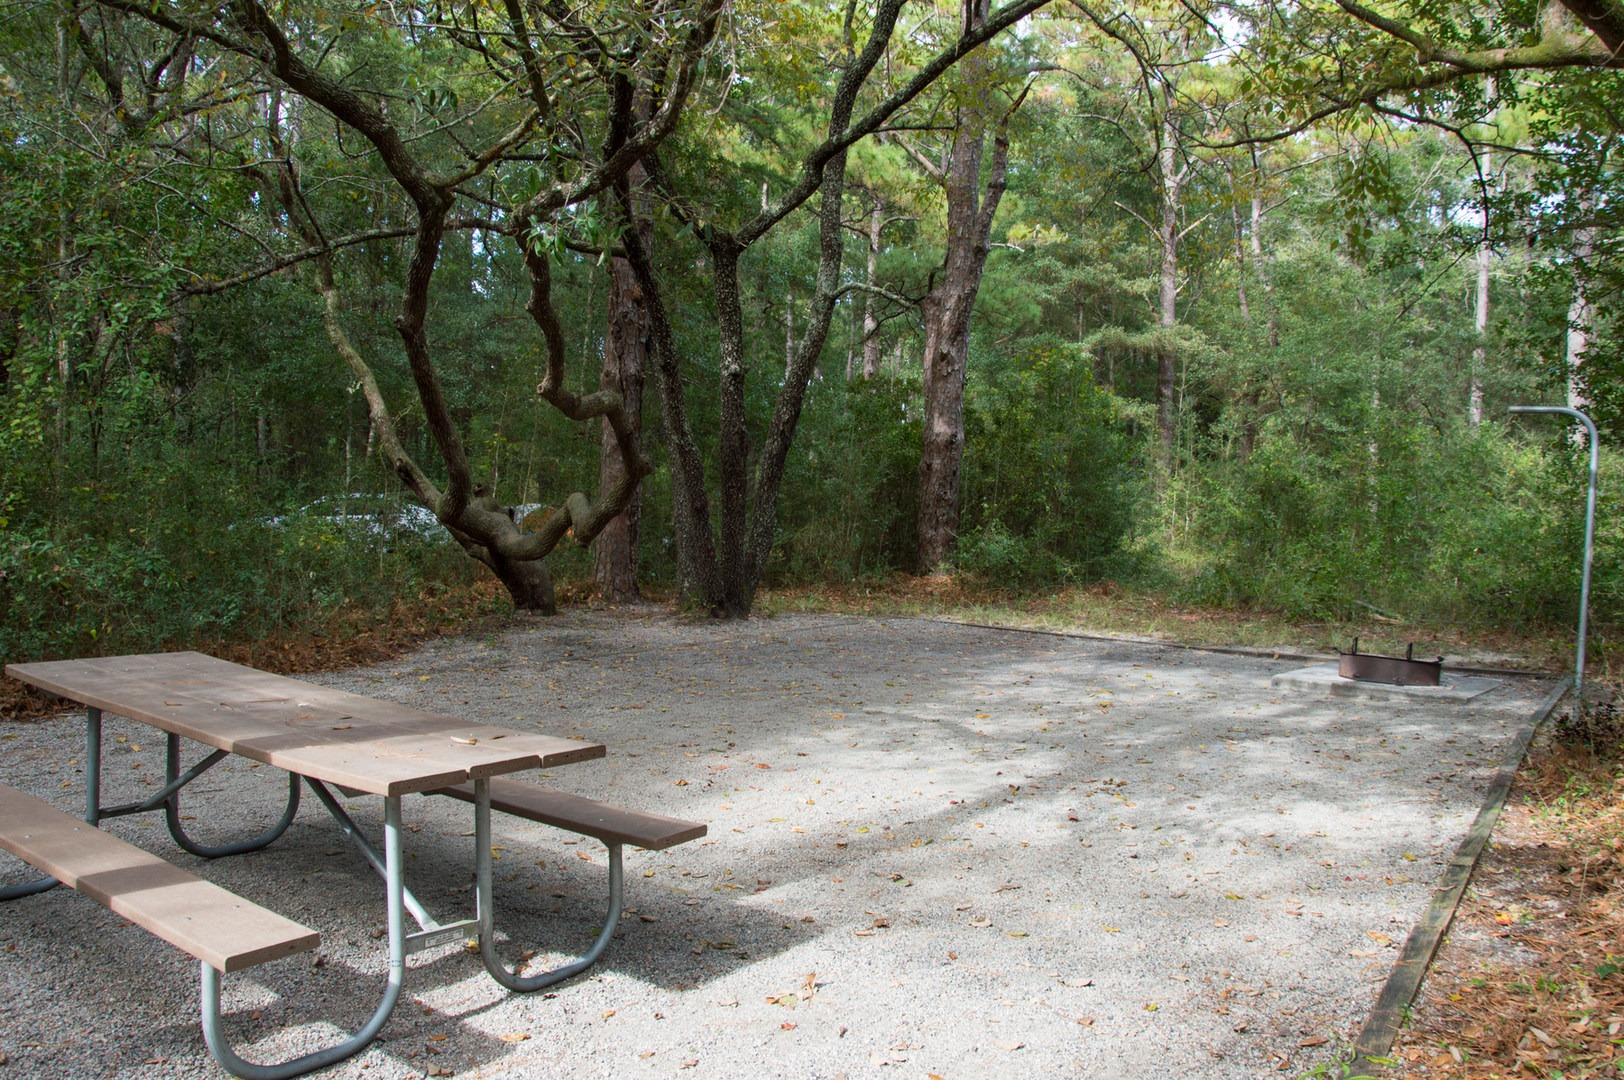 Carolina Beach State Park Campground